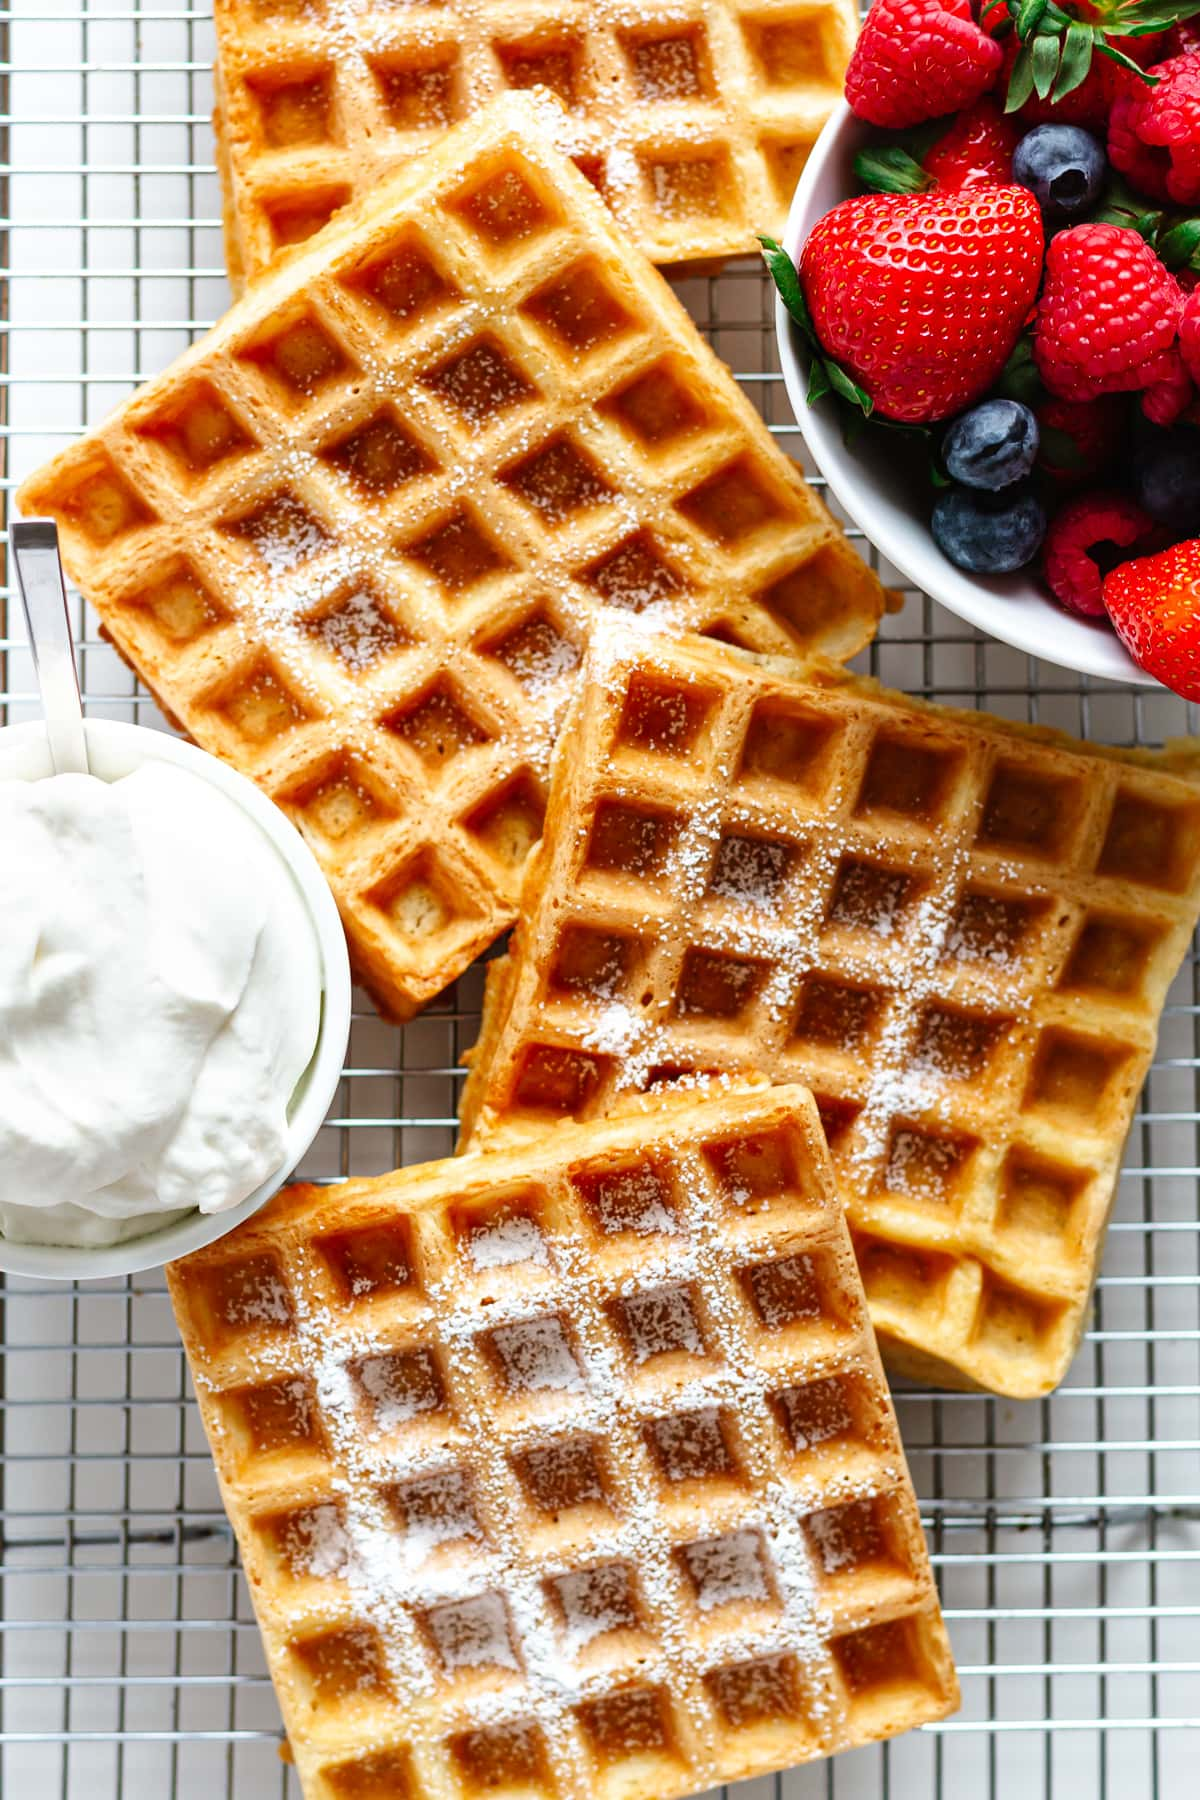 Square waffles dusted with powdered sugar on a cooling rack with bowl of berries and whipped cream.